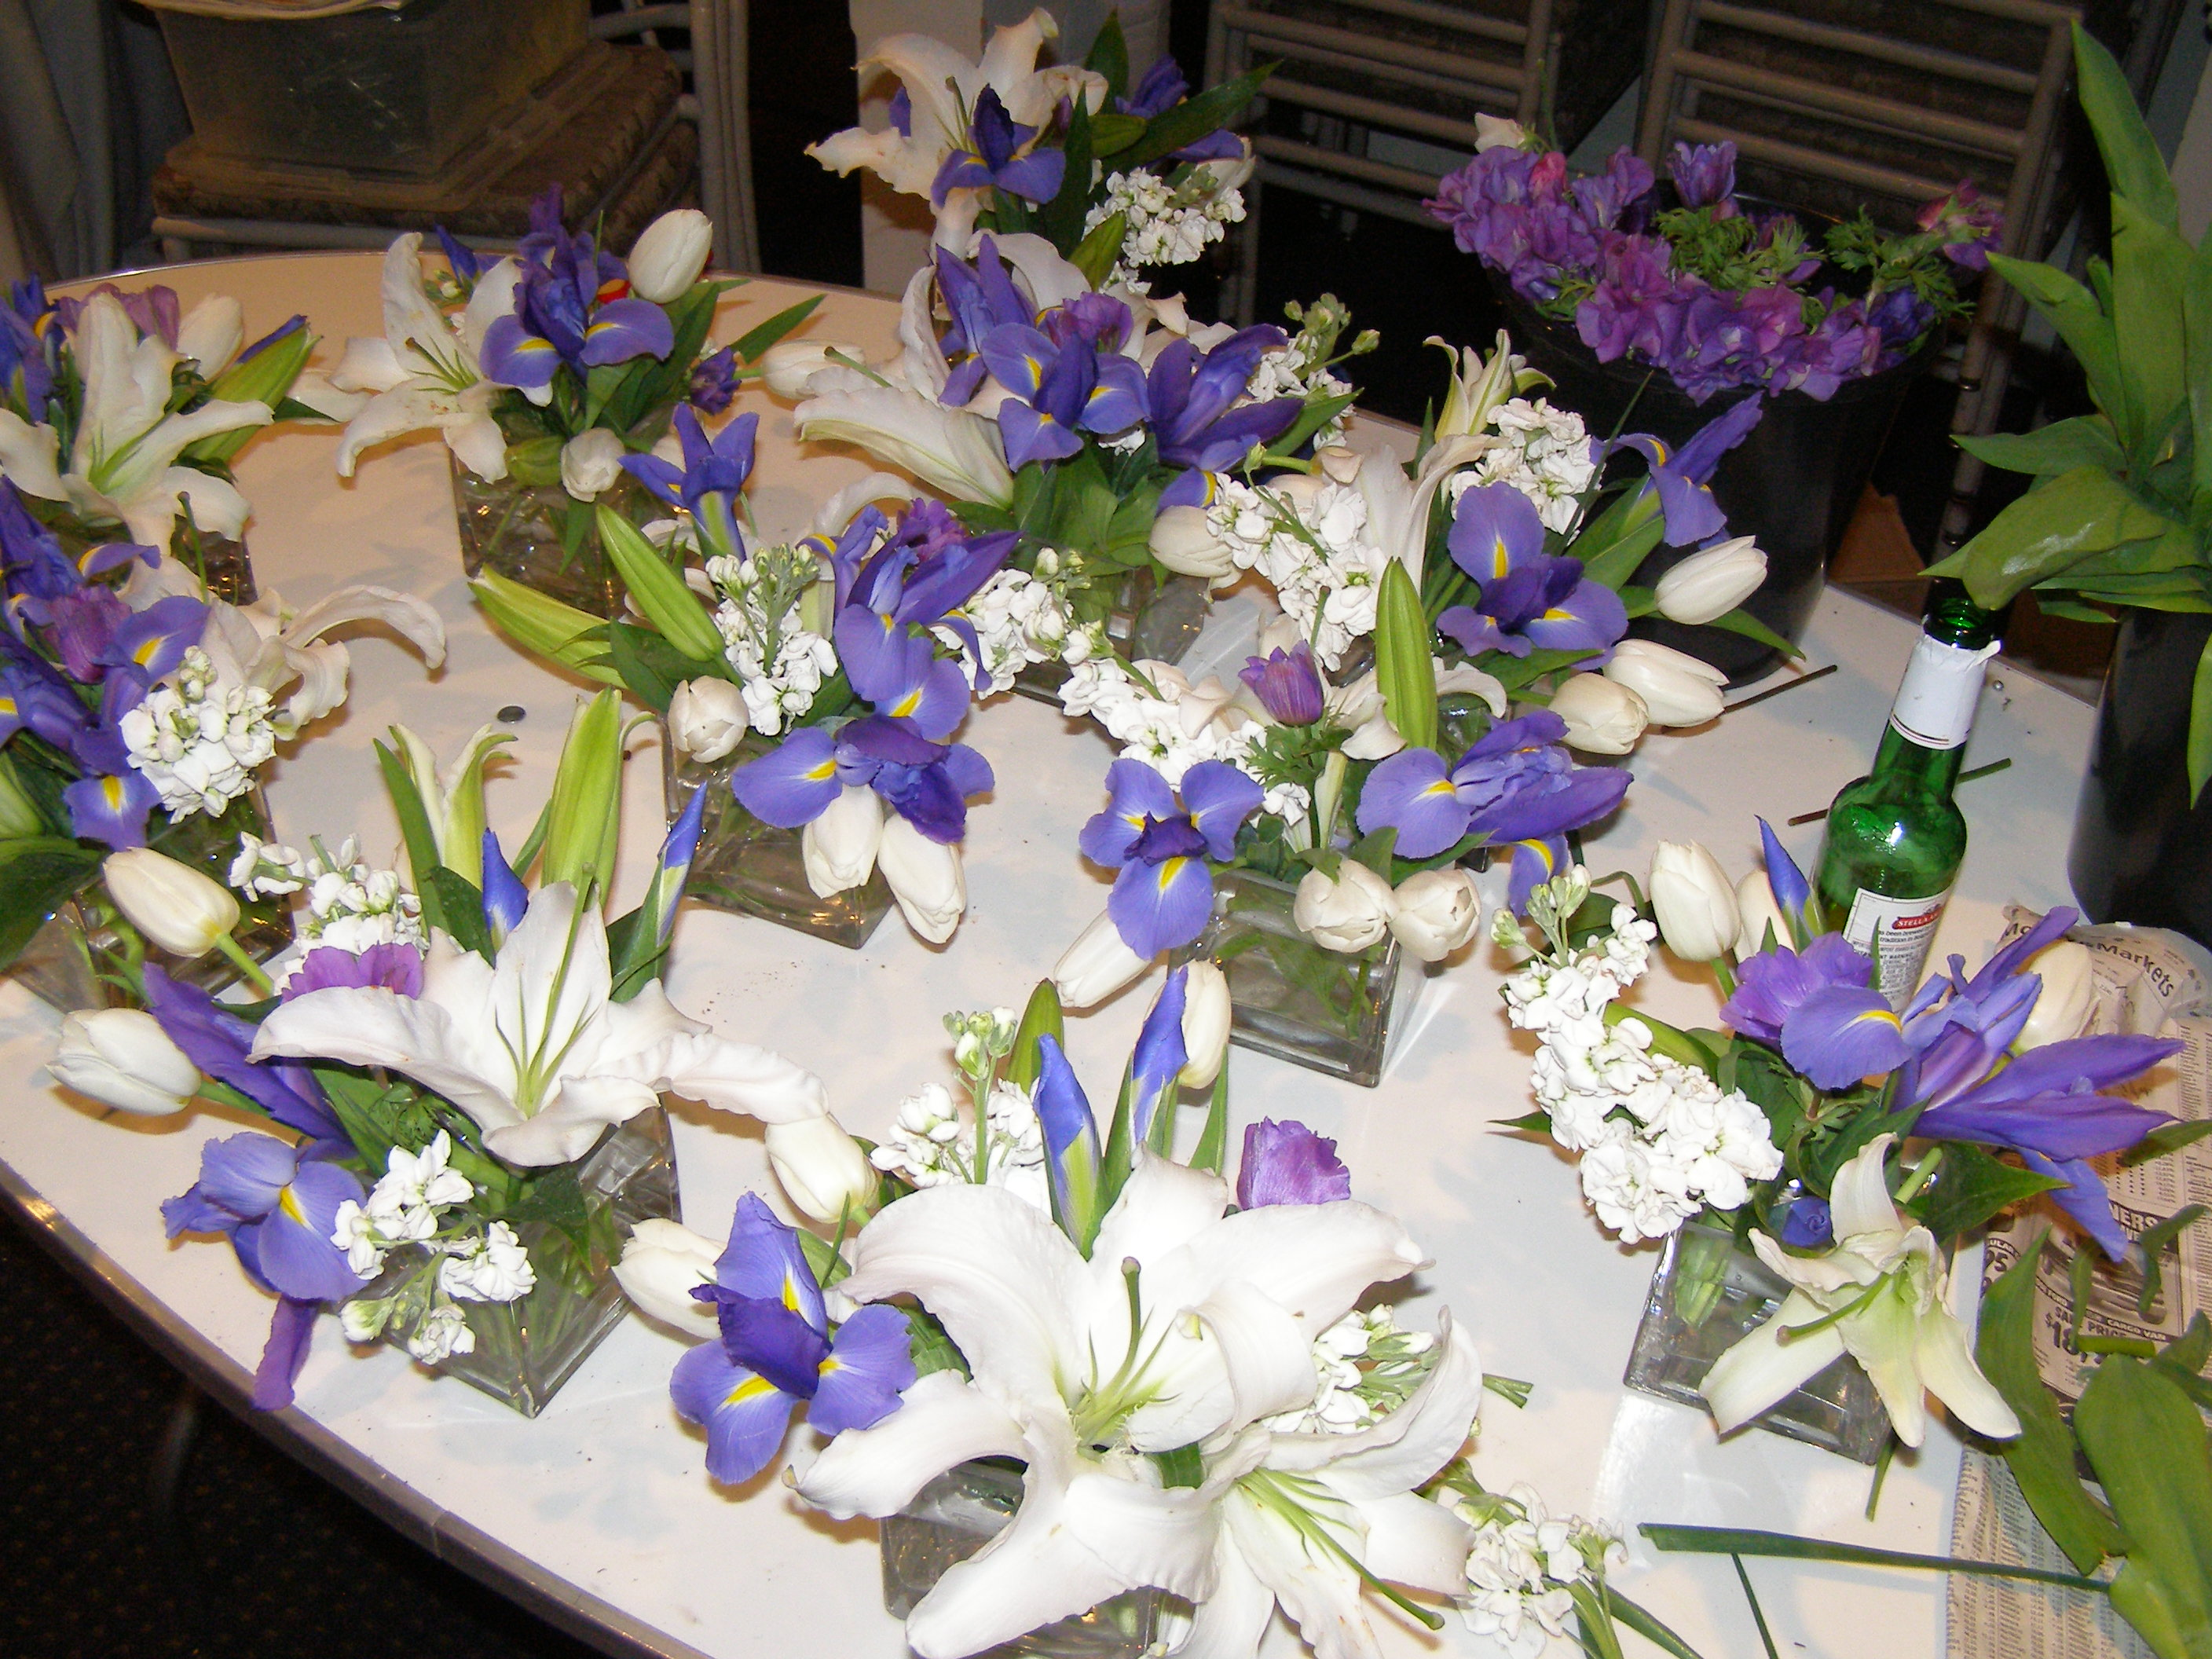 Business directory products articles companies - Flowers for table decorations ...